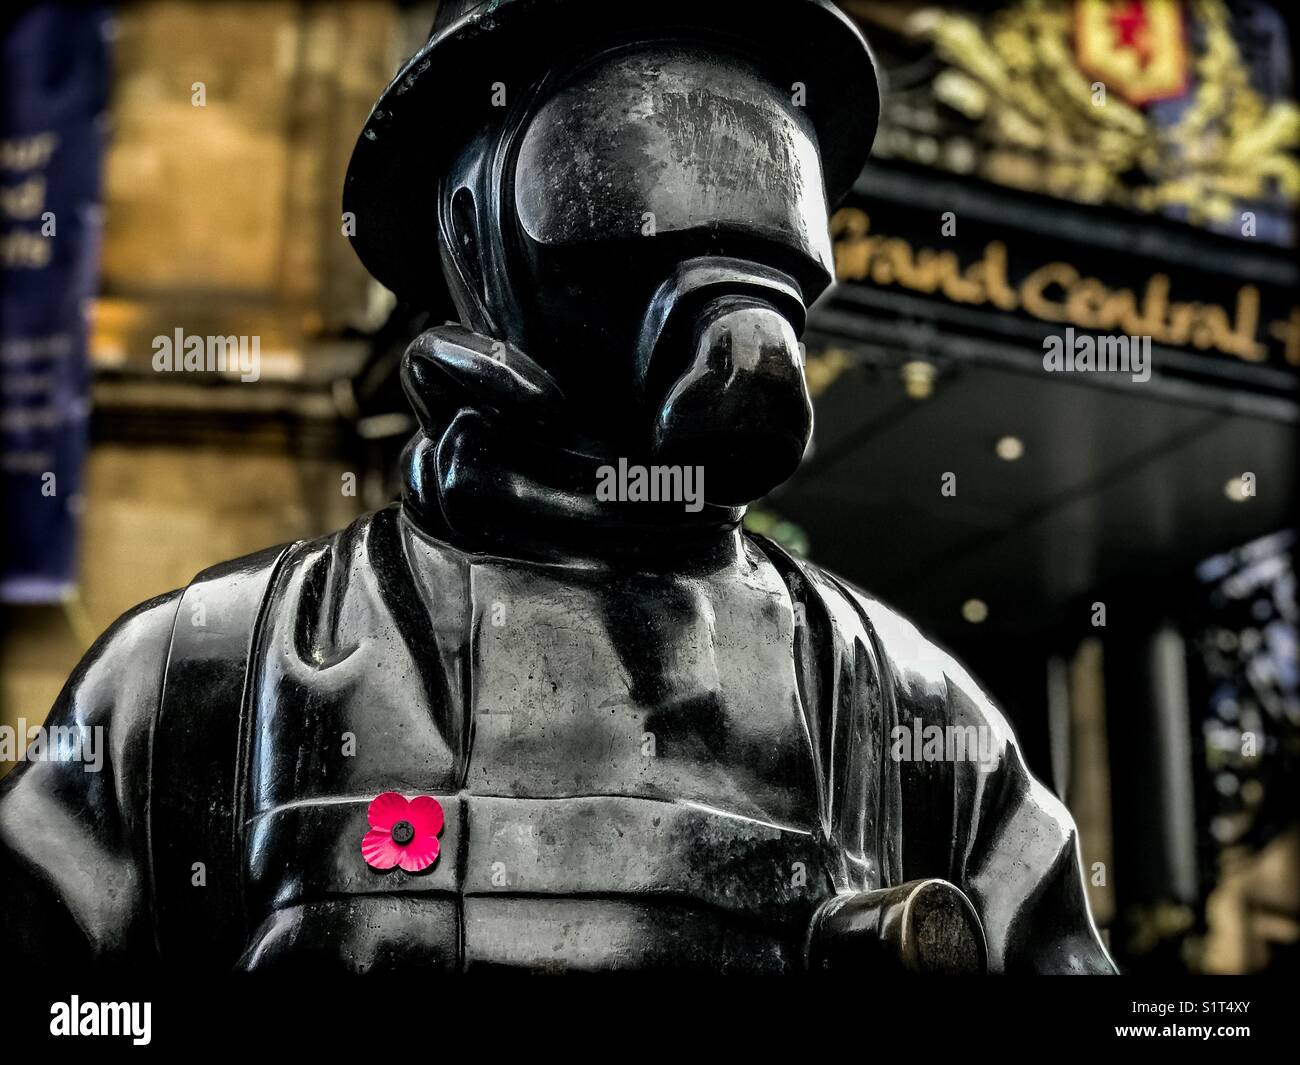 A statue at Glasgow central station with a poppy stick on his chest in memory of those who lost their lives in battle Stock Photo